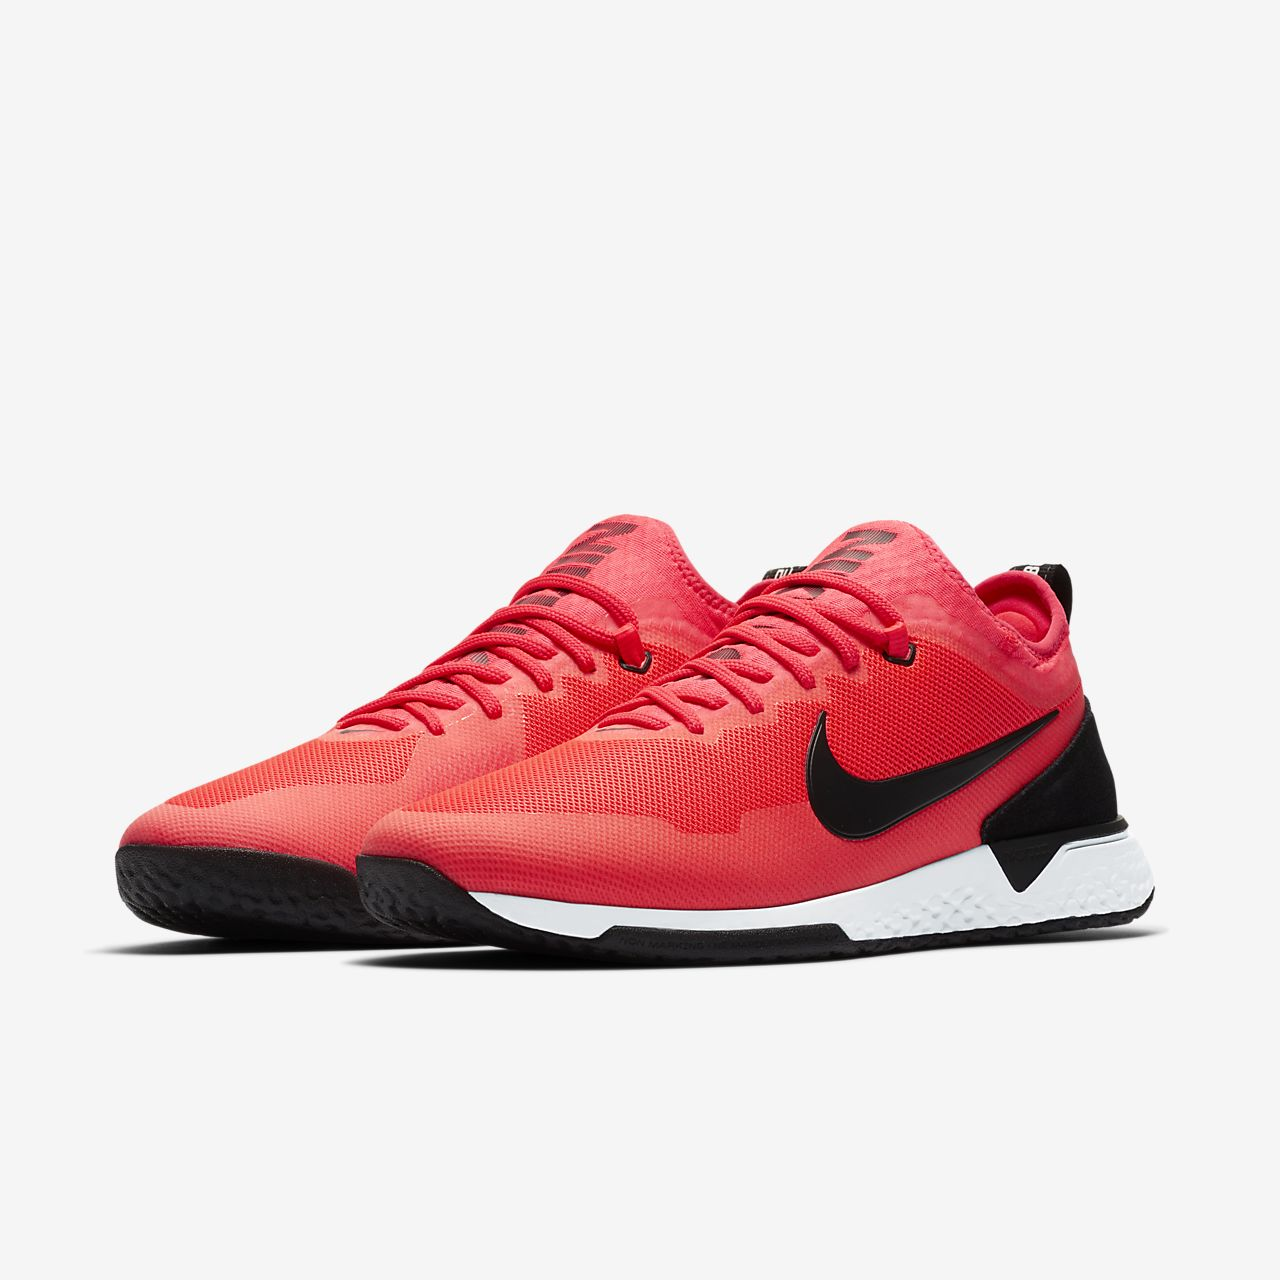 d1d1b909e Low Resolution Nike F.C. Soccer Shoe Nike F.C. Soccer Shoe